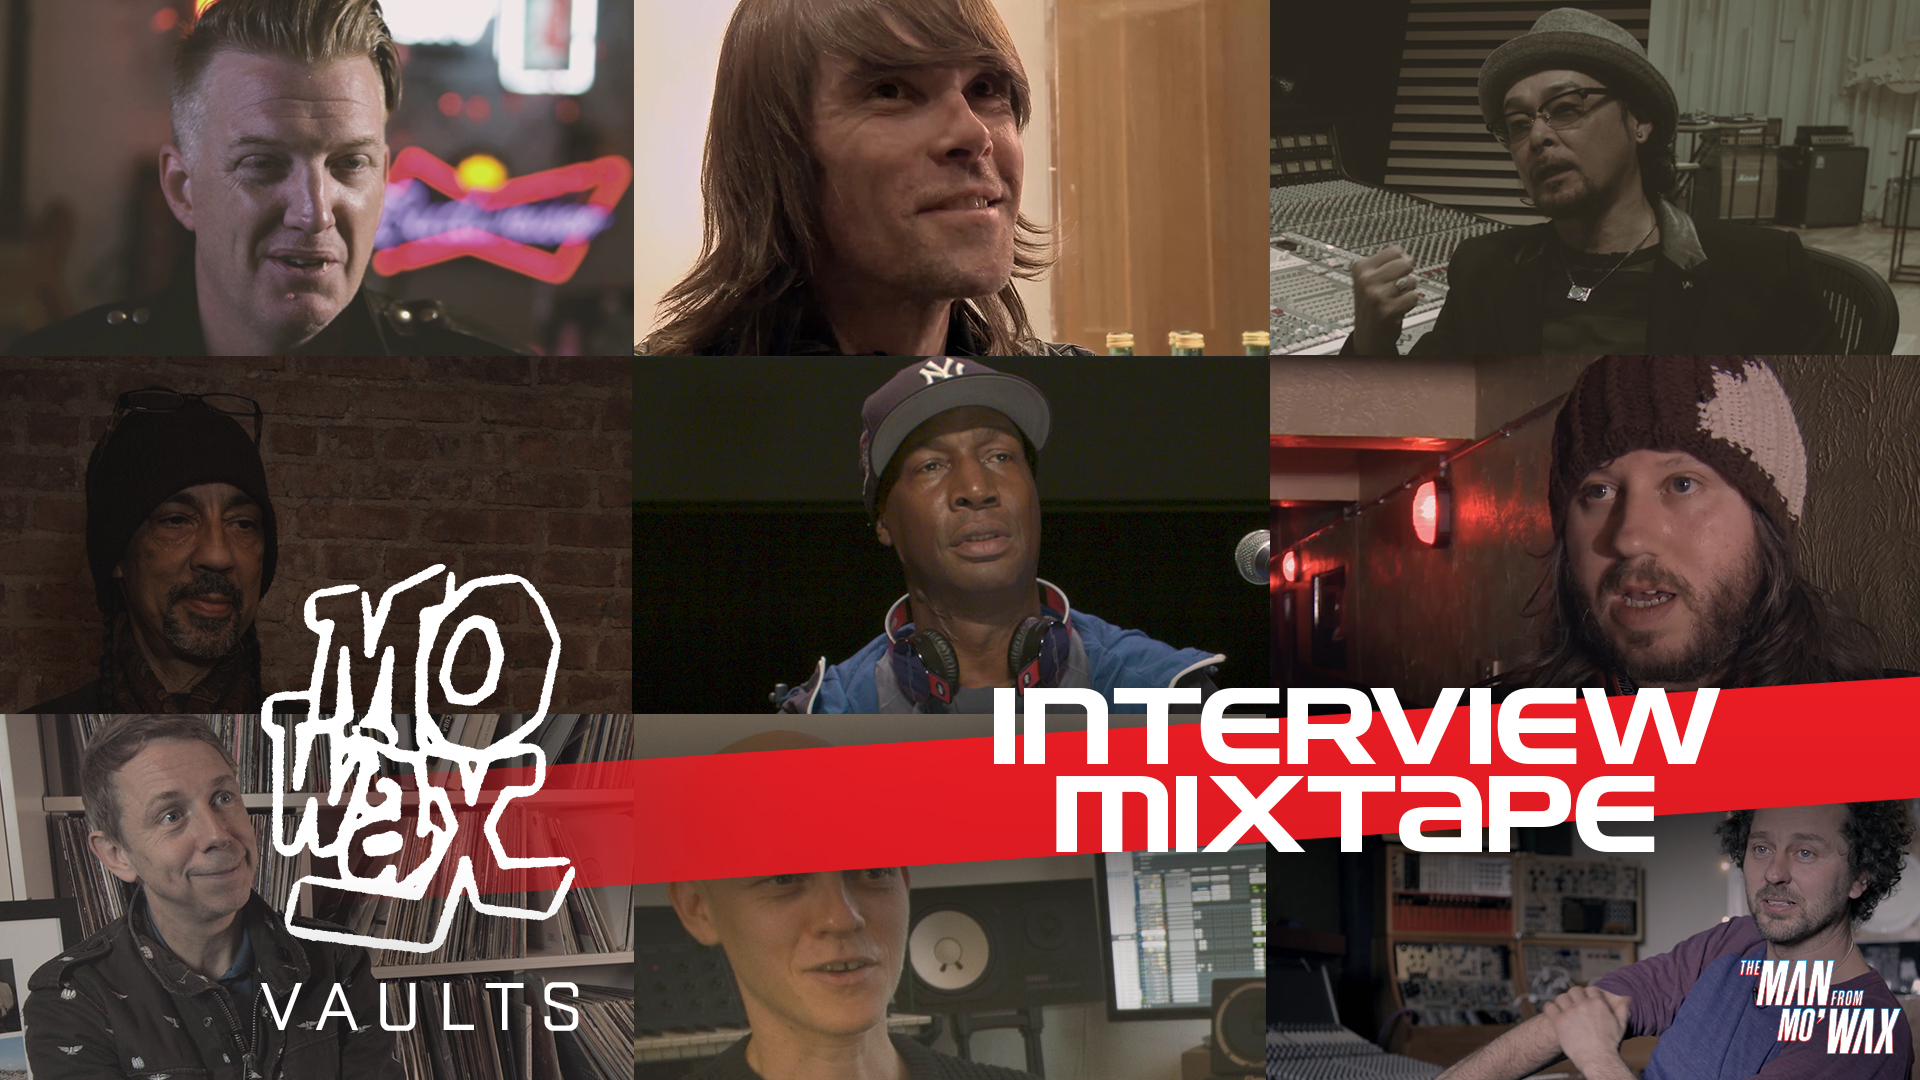 Interview Mix Tape (2018, 25 mins)  Extended interview mash-up with Joshua Homme, Futura, DJ Shadow, Ian Brown and more